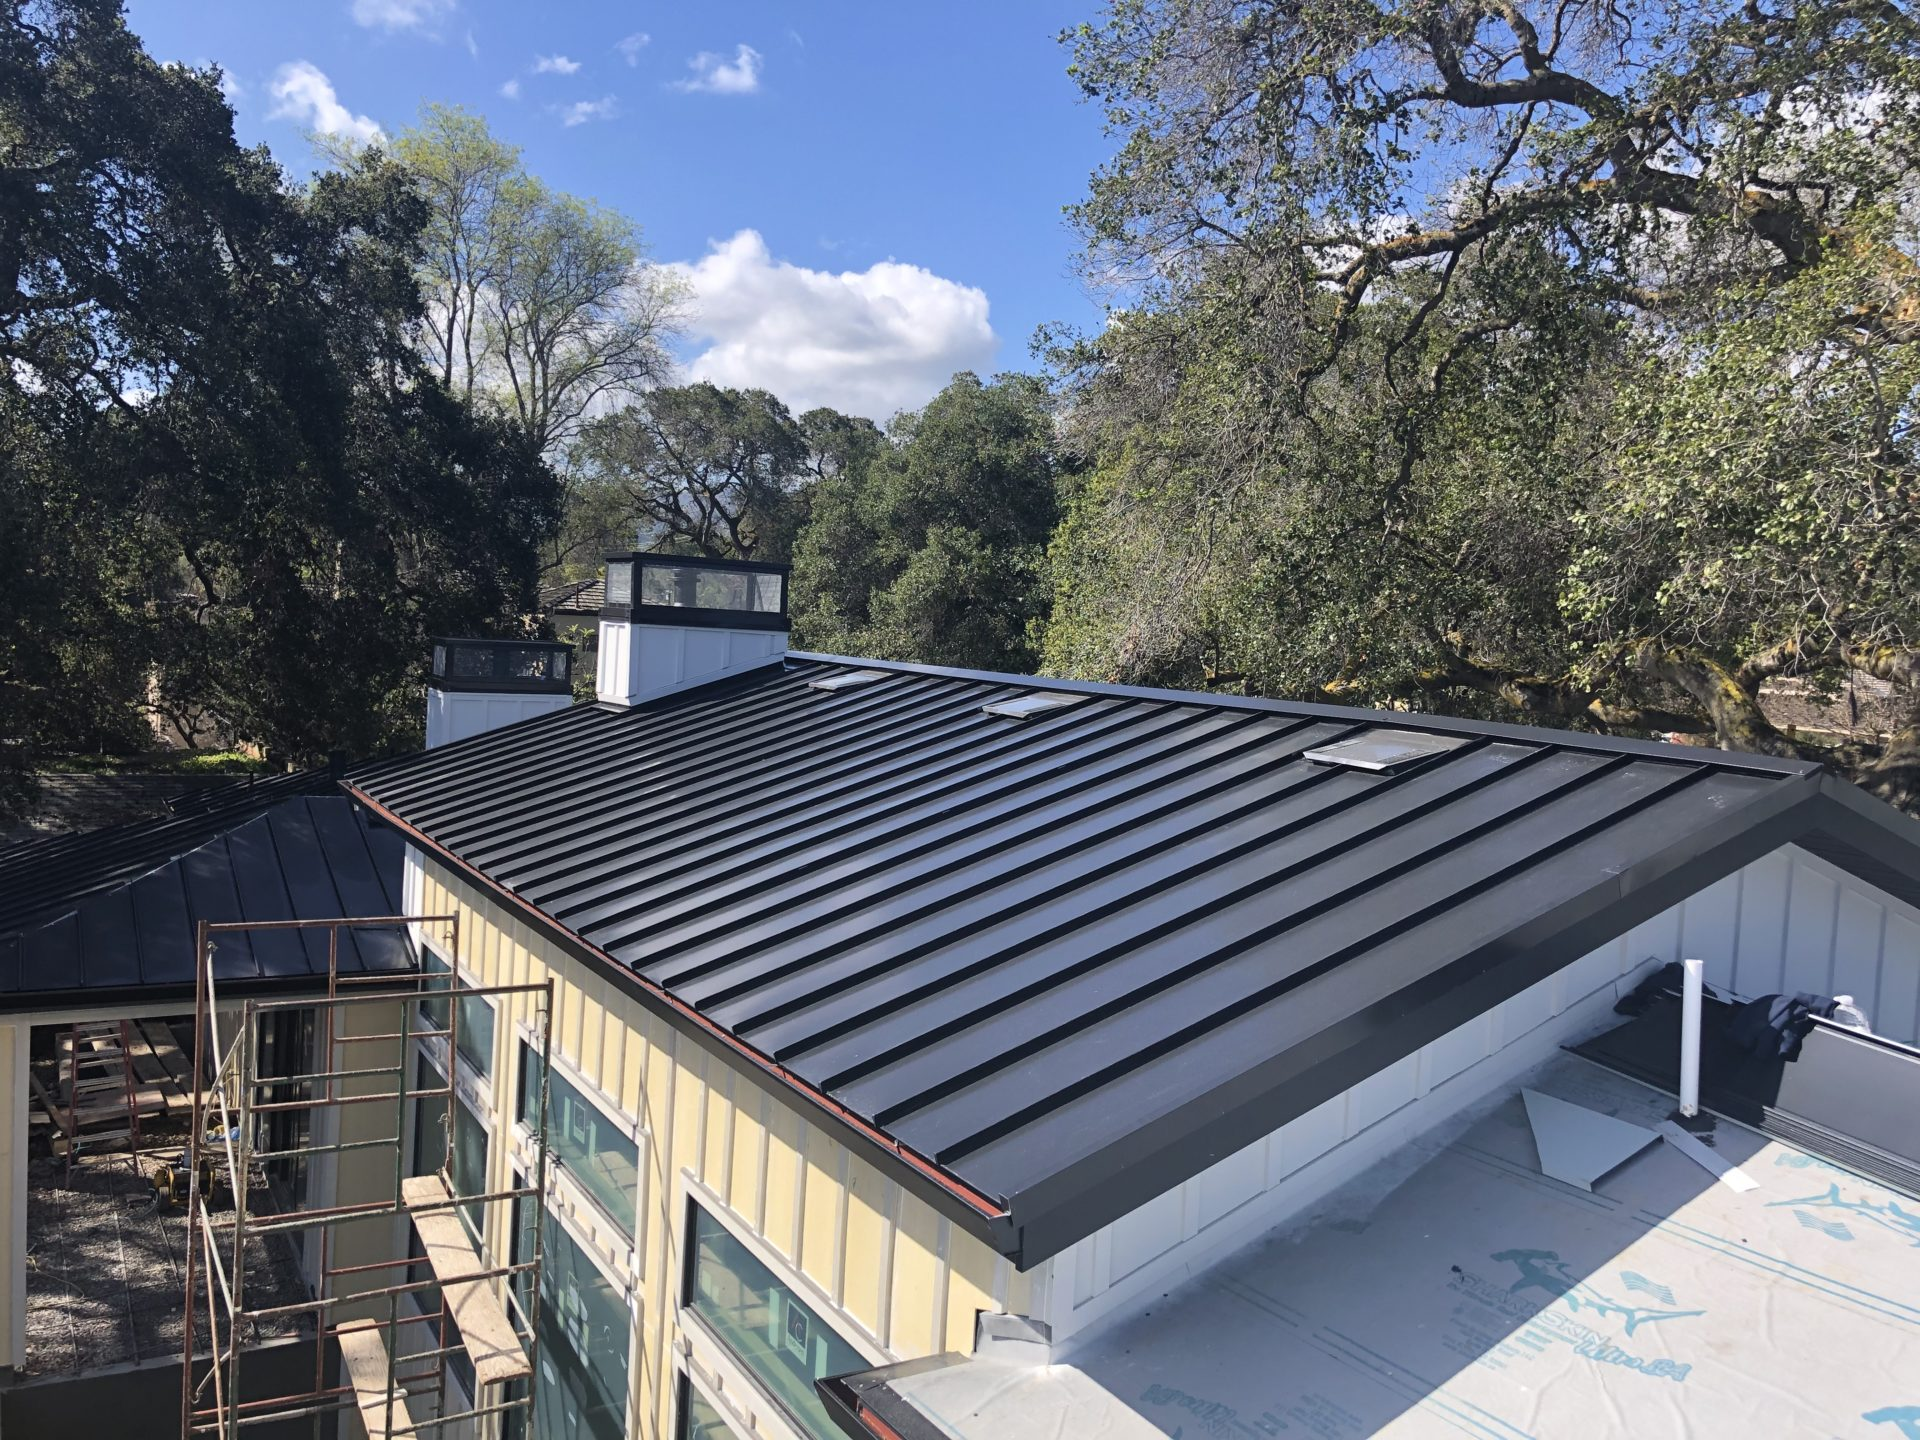 residential metal roof reroofing completed by professional roofers in morgan hill